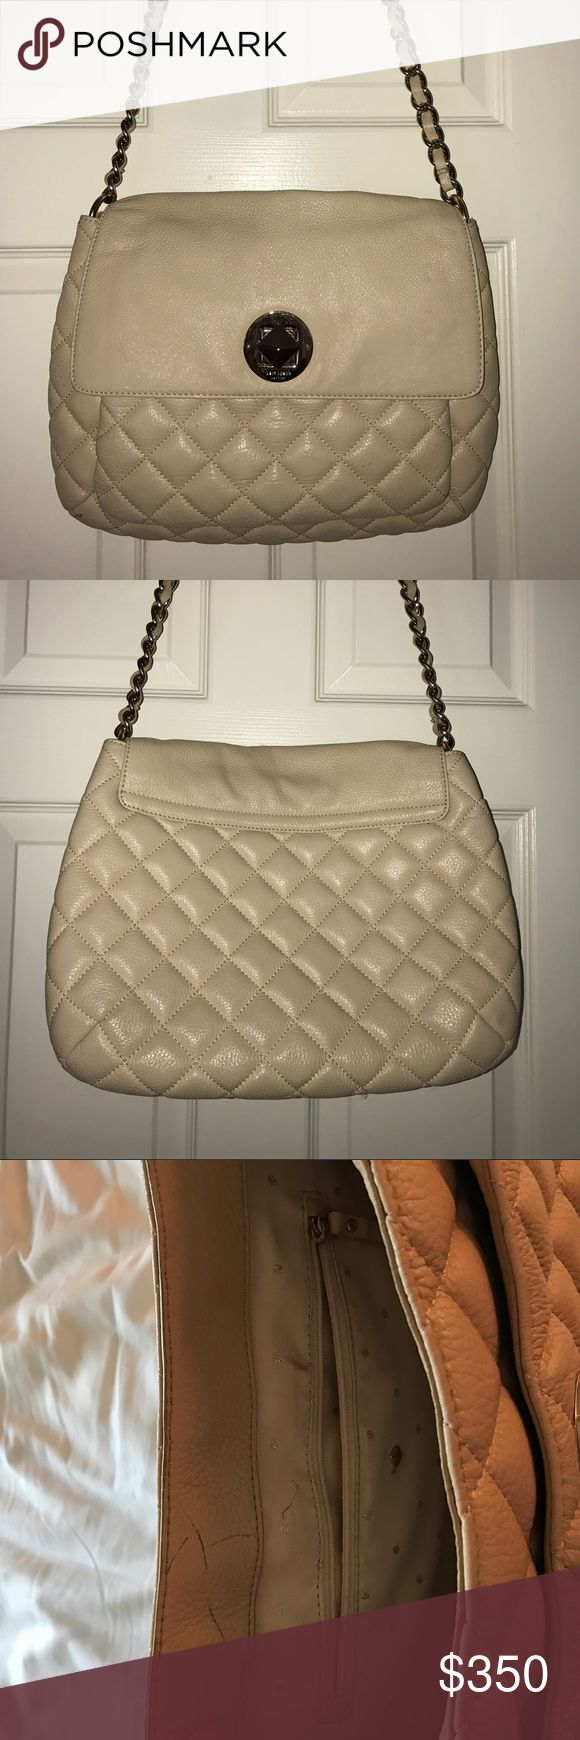 Kate Spade Quilted Leather Corinne Gold Coast Bag This gently used bag is perfect for transition from work to a night out. Lots of space for everything a girl could need! kate spade Bags Shoulder Bags